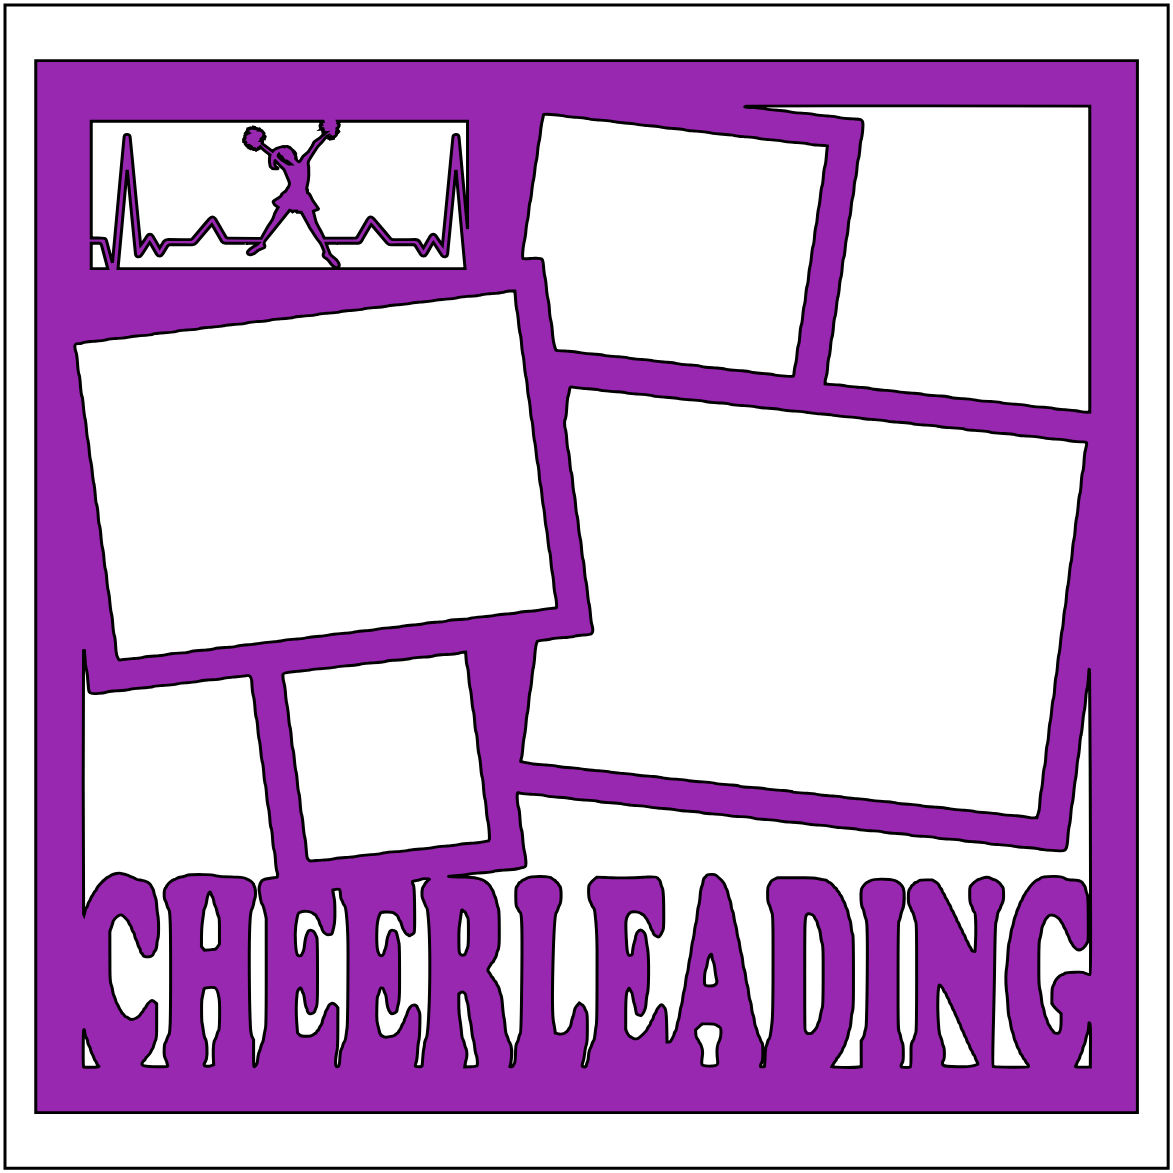 CHEERLEADING 1 PAGE OVERLAY